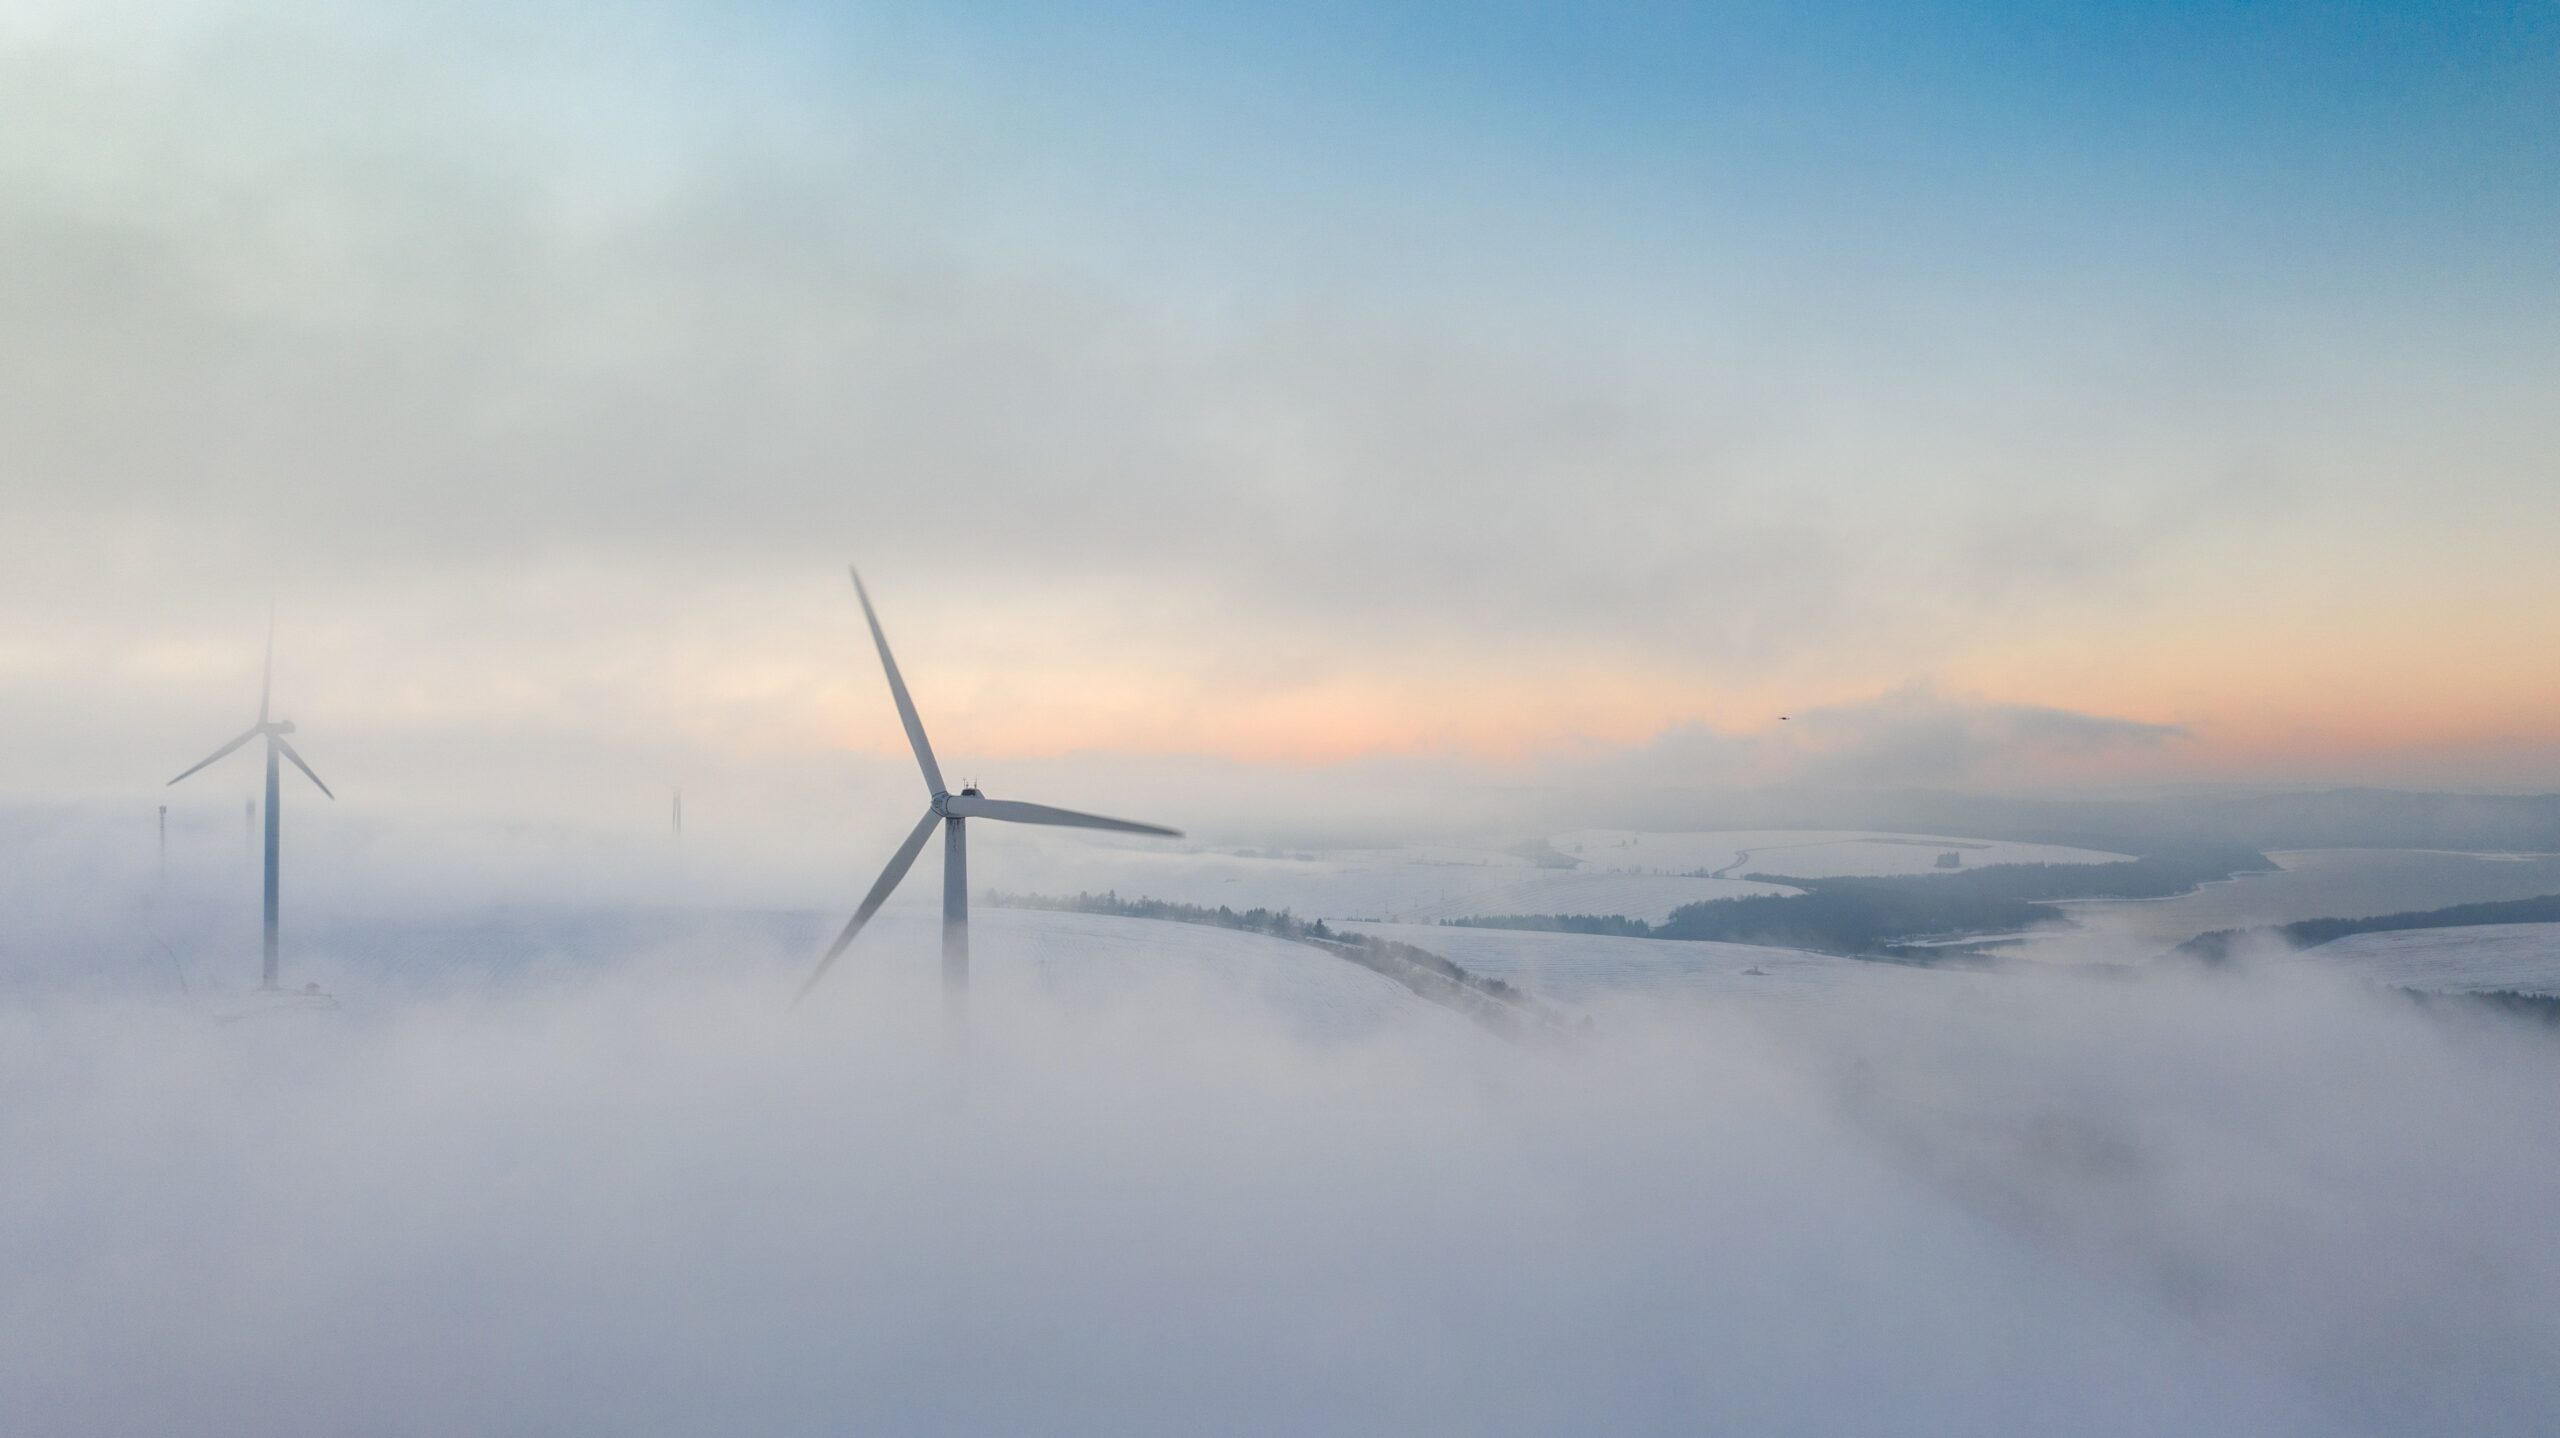 wind turbine inspection software